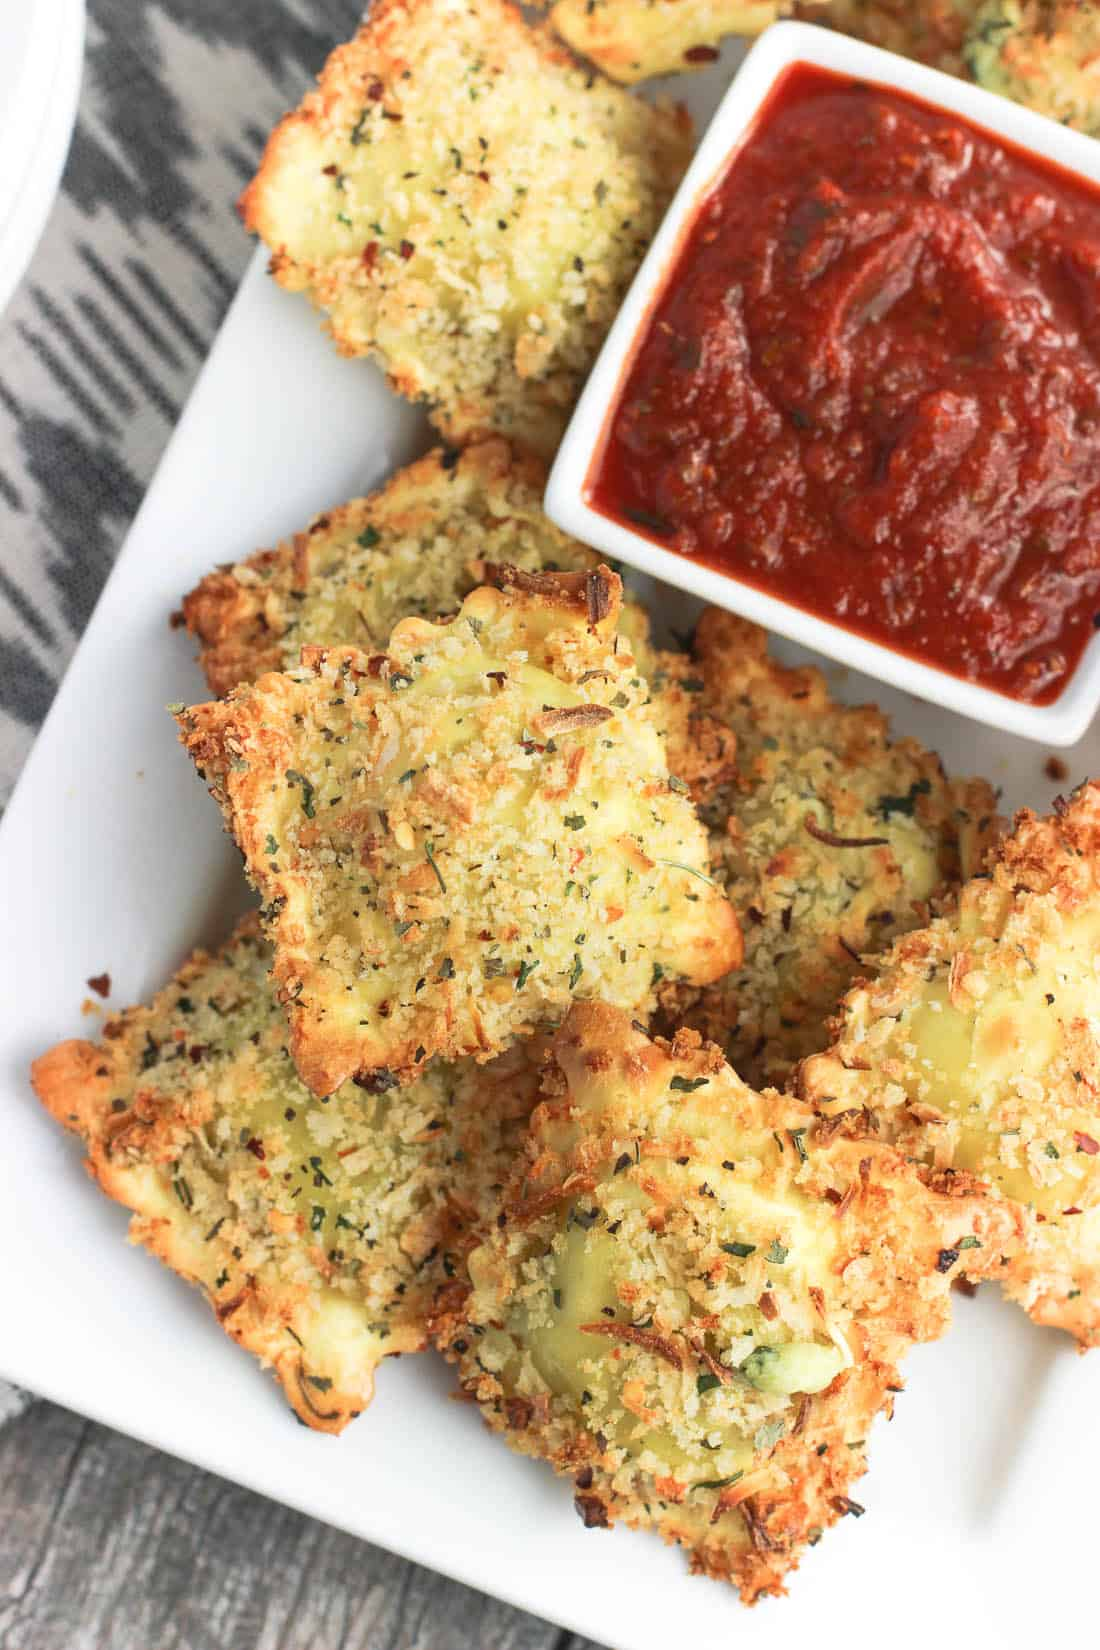 This easy recipe for crispy and baked toasted ravioli will be a new appetizer favorite! Ravioli is coated in egg and an Italian-spiced panko breadcrumb mixture and baked for a dish that's crisp and made-healthier! Serve with marinara sauce.